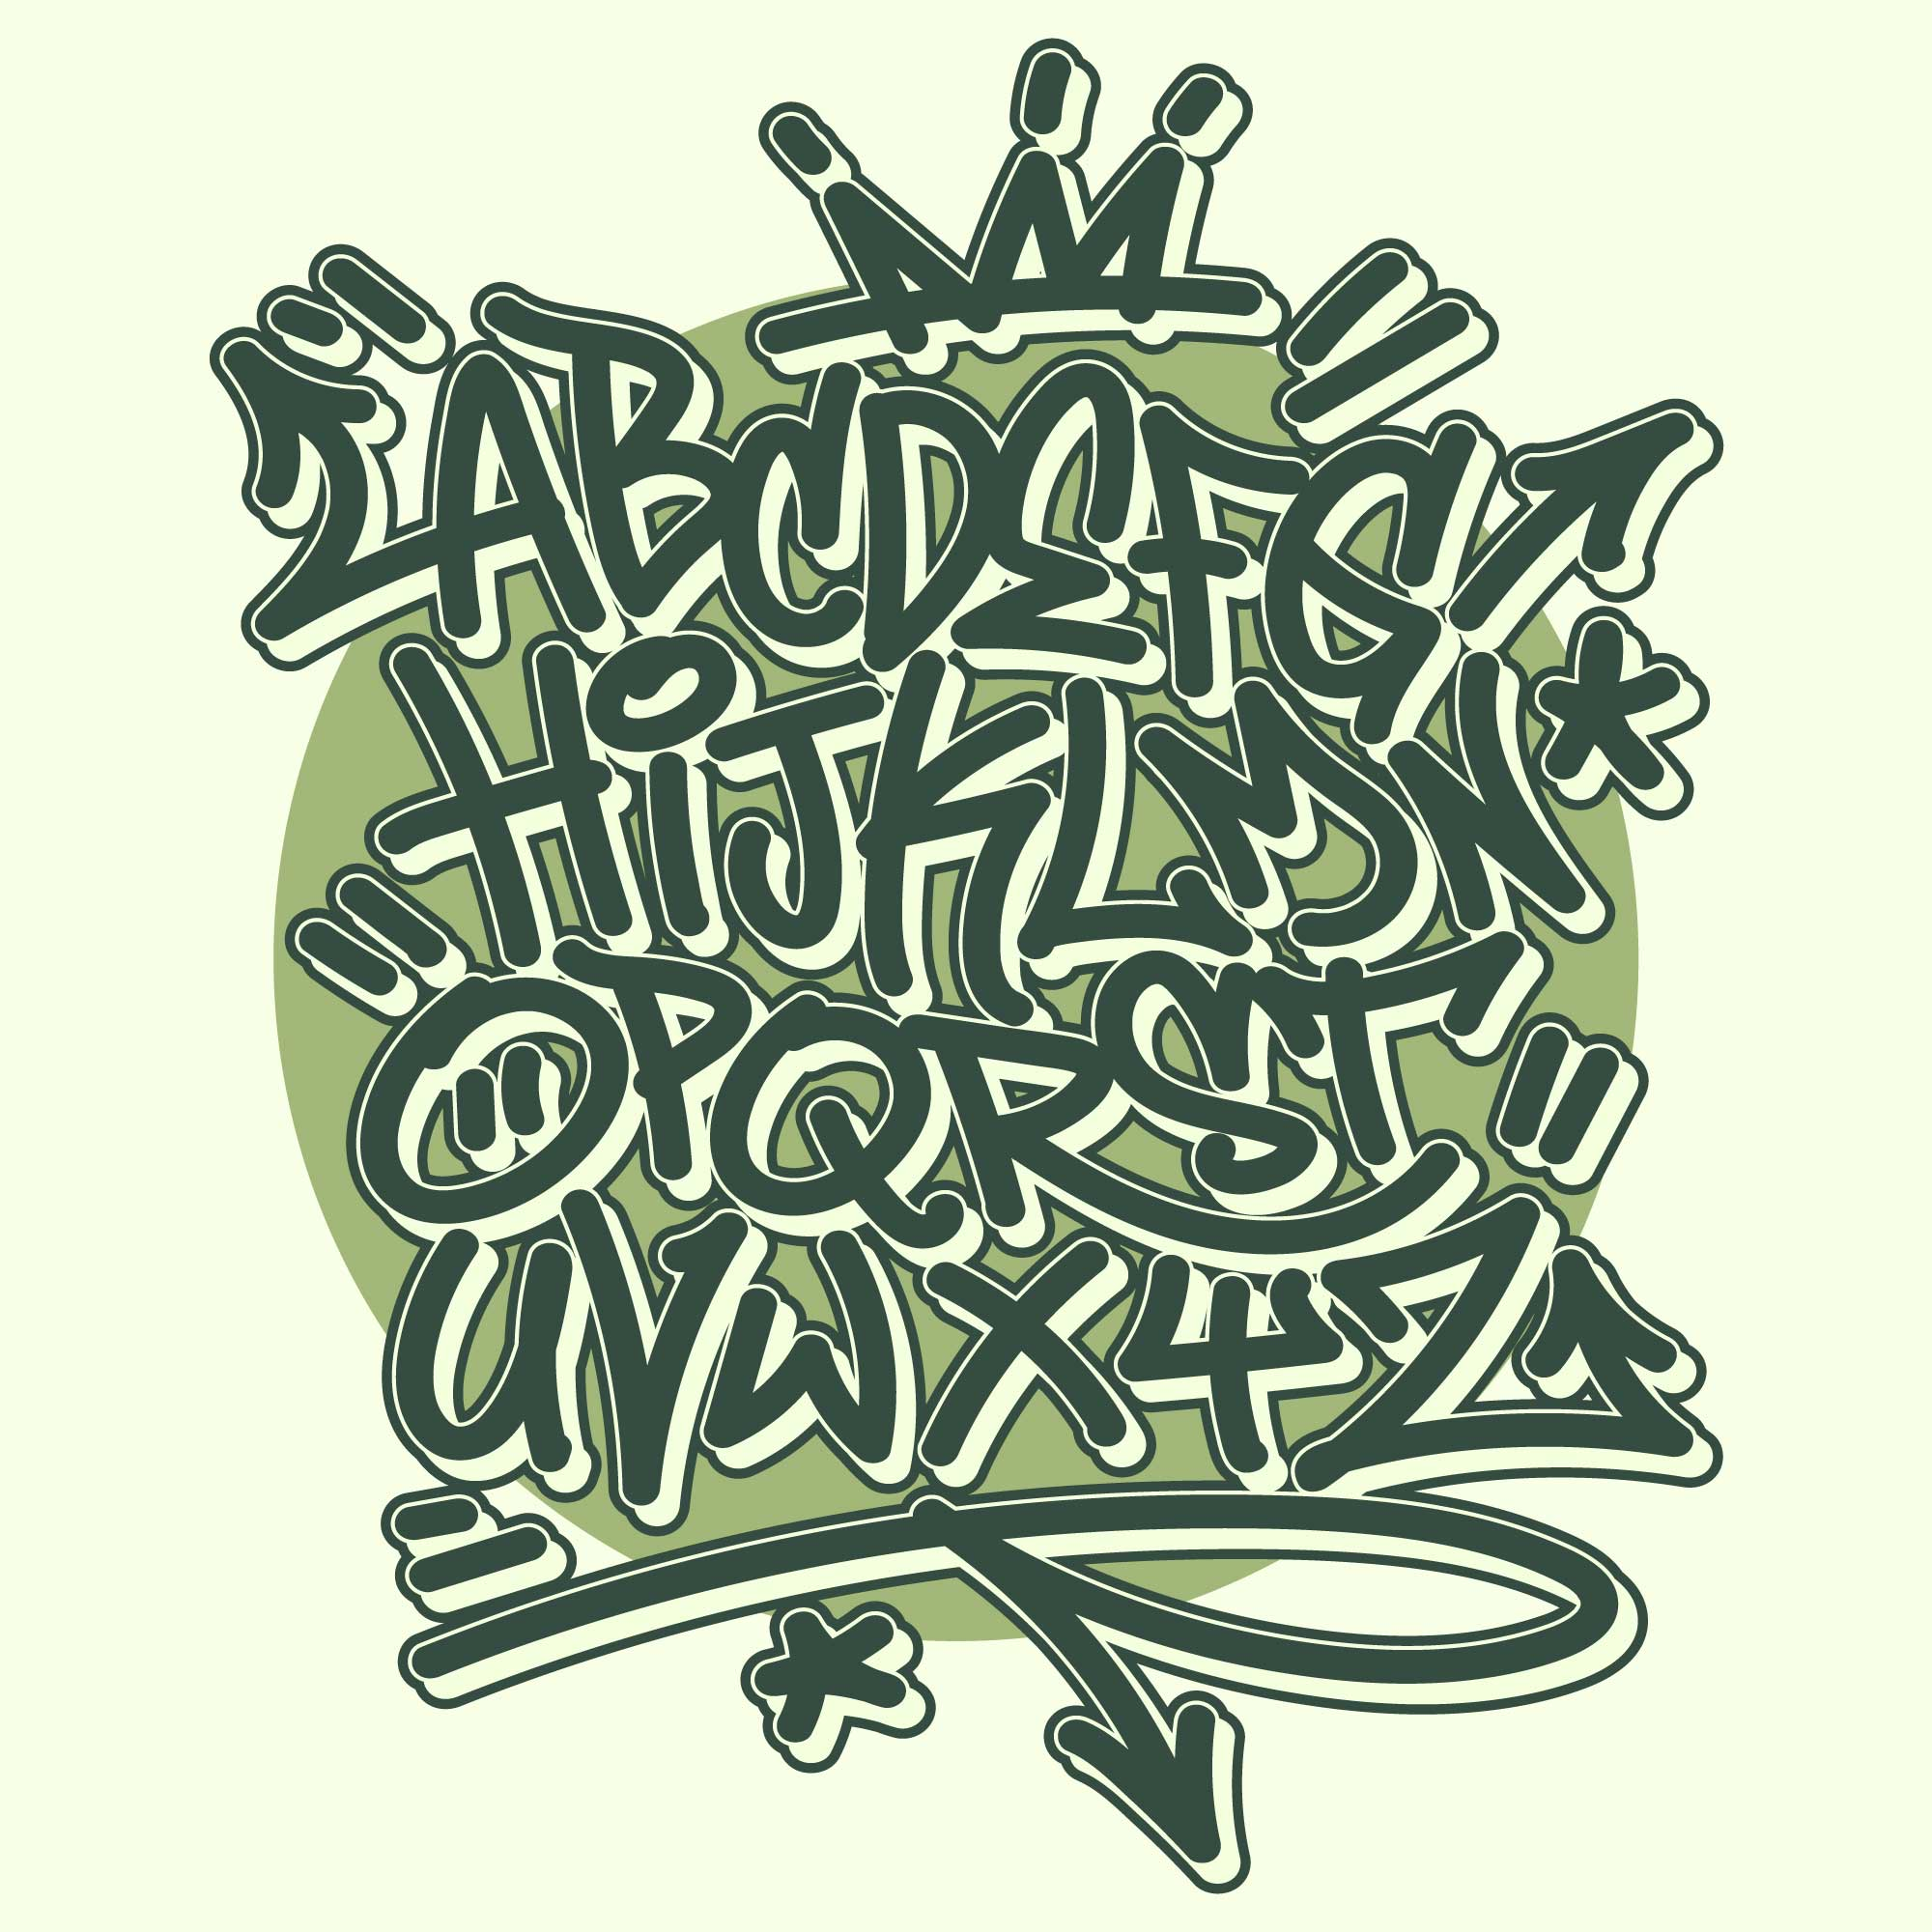 Graffiti alphabet download free vector art stock graphics images